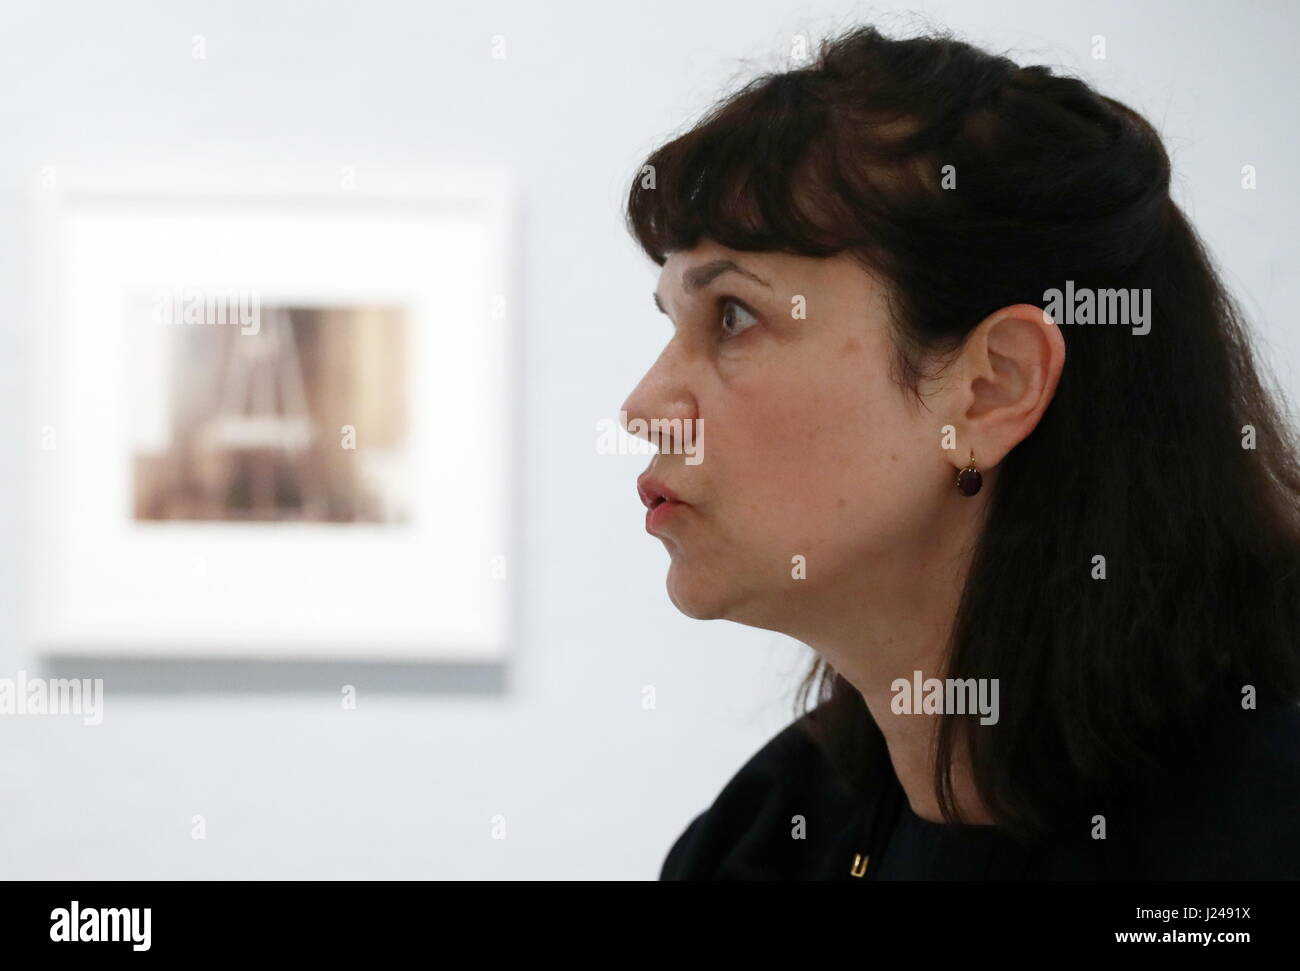 Moscow, Russia. 24th Apr, 2017. Pushkin State Museum of Fine Arts Director Marina Loshak at an exhibition of works - Stock Image